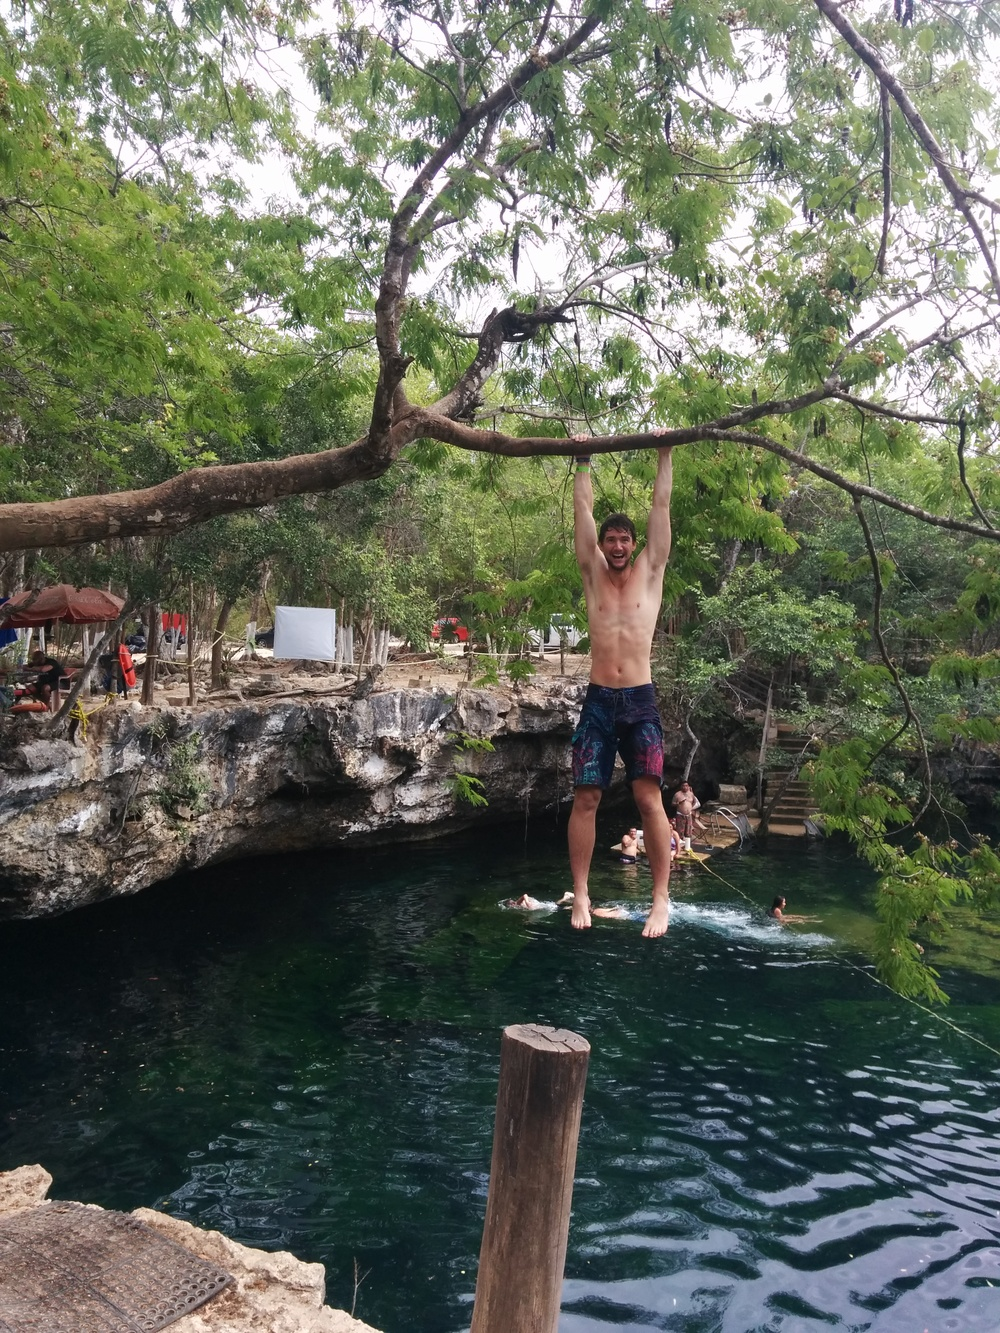 Monkeying around at the refreshing Garden of Eden cenote, one of the many limestone sinkholes around the outskirts of Tulum.